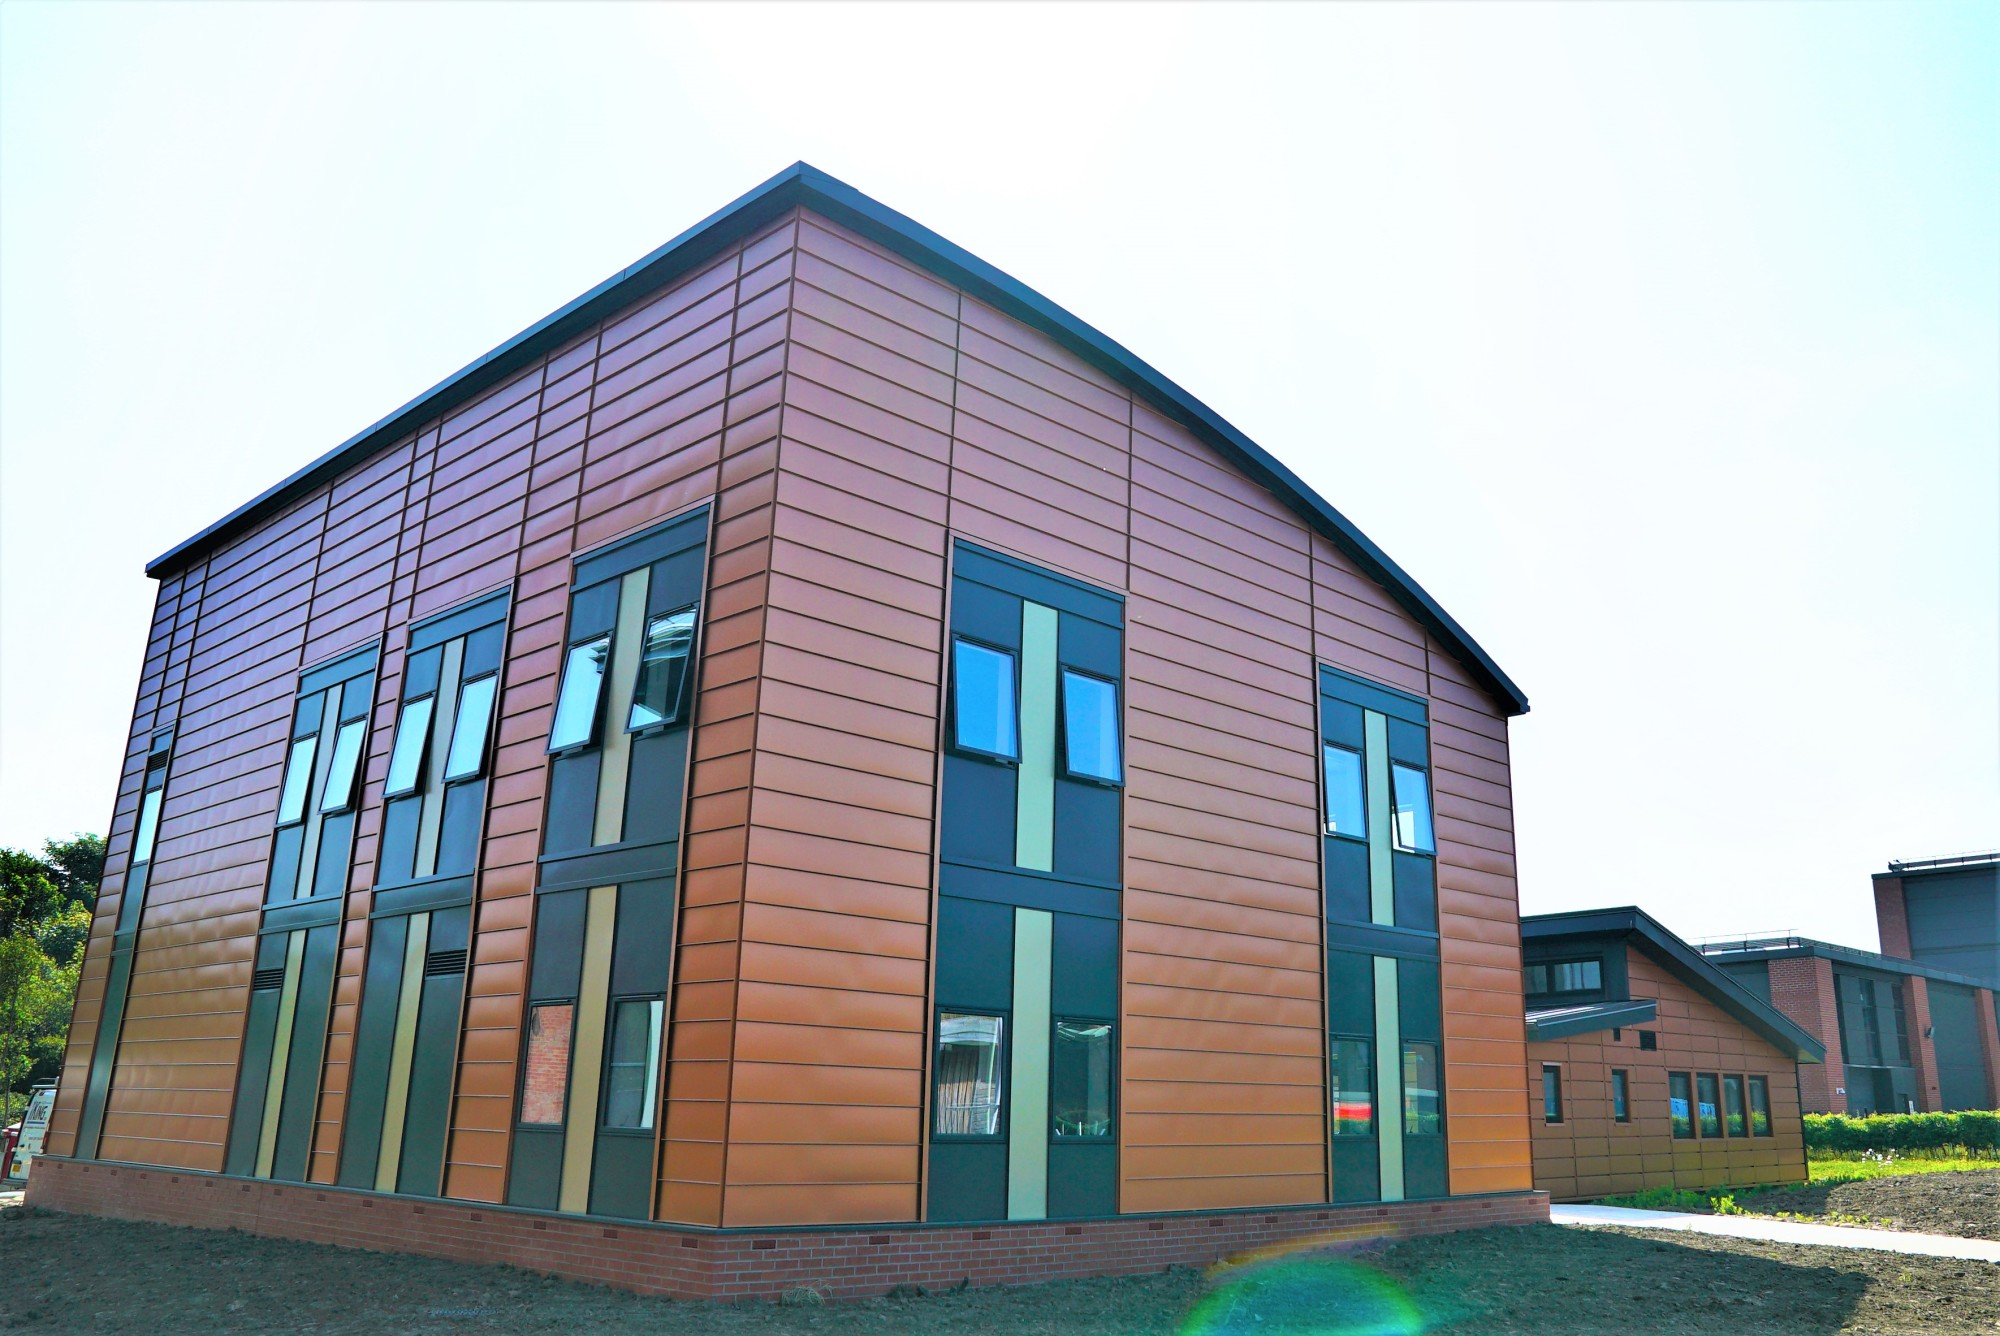 The award-winning active office is the UK's first energy positive office